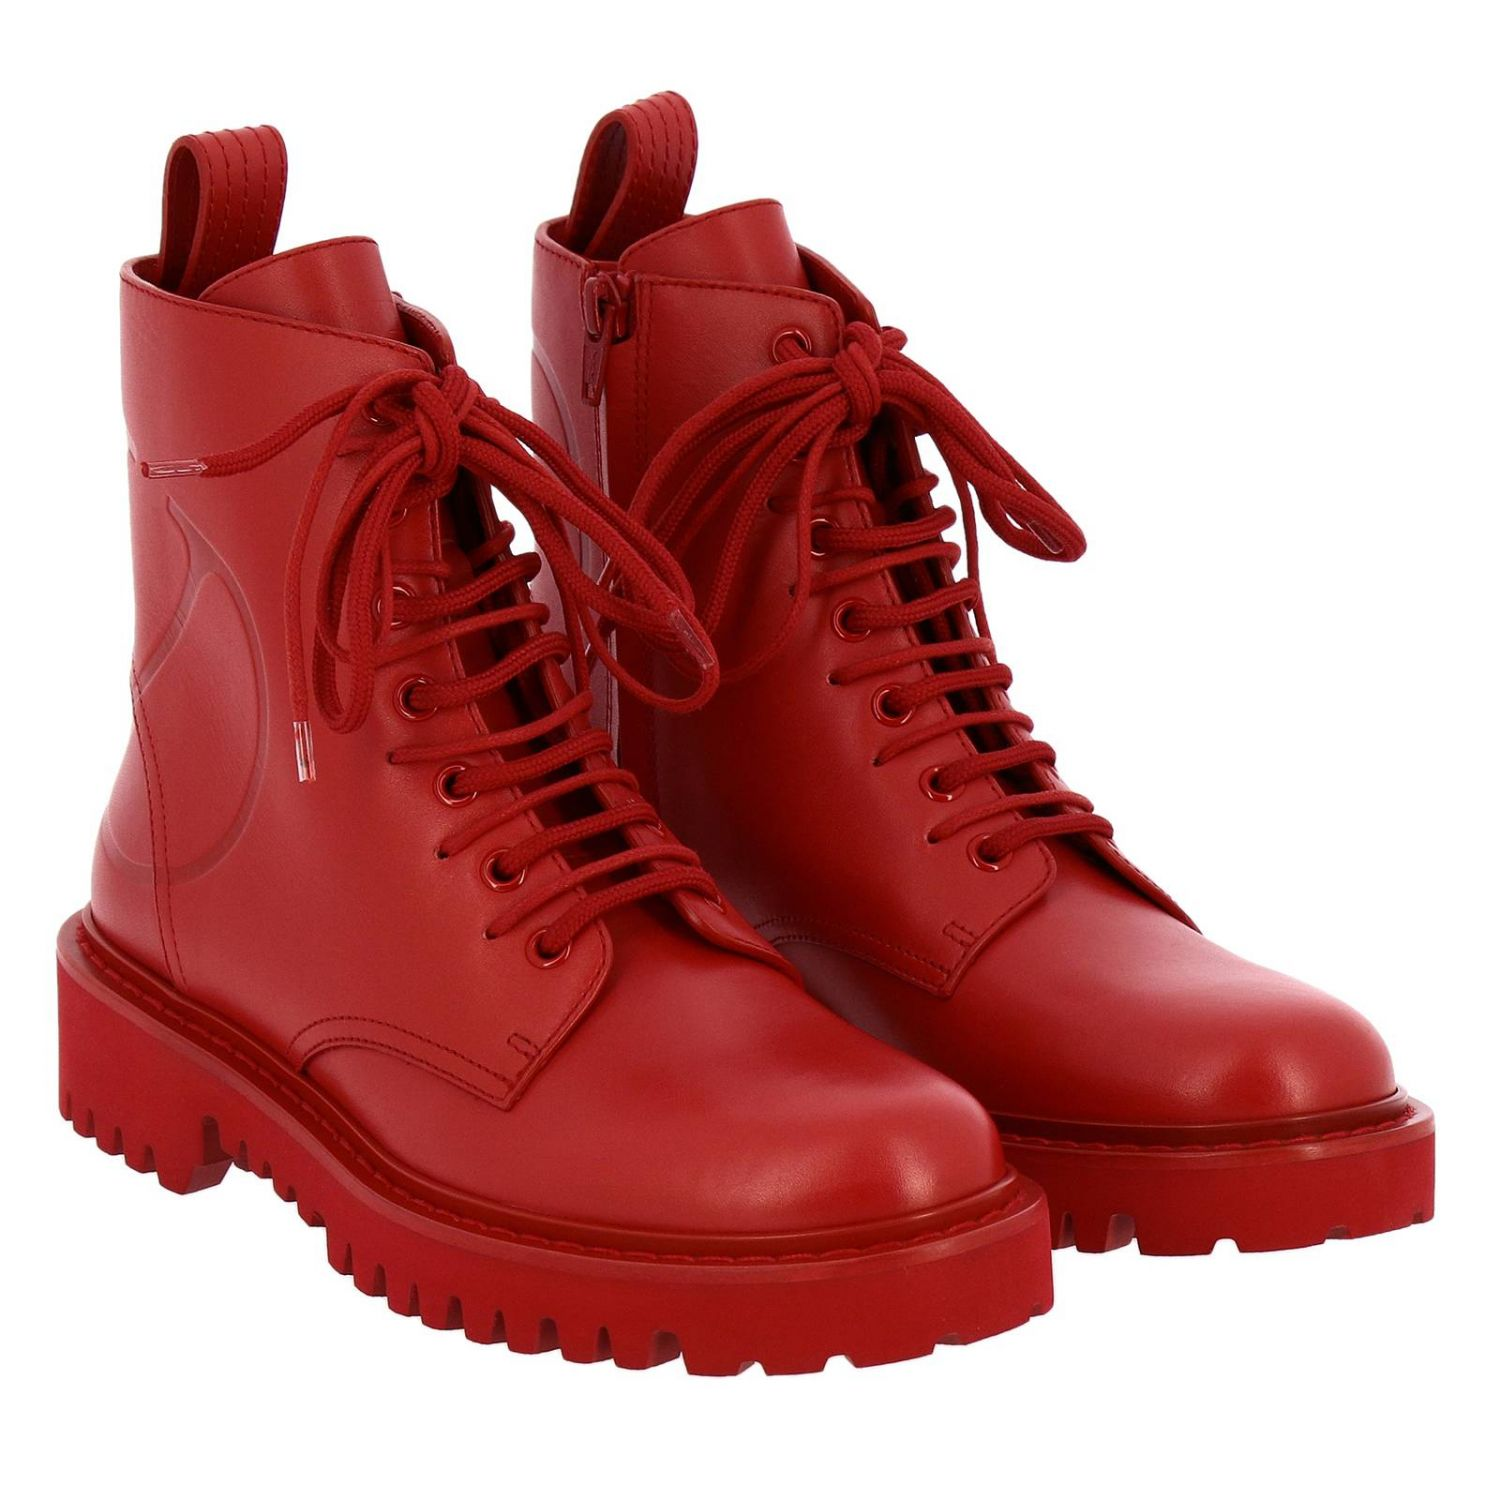 Valentino Garavani VLogo leather boots with rubber sole red 2